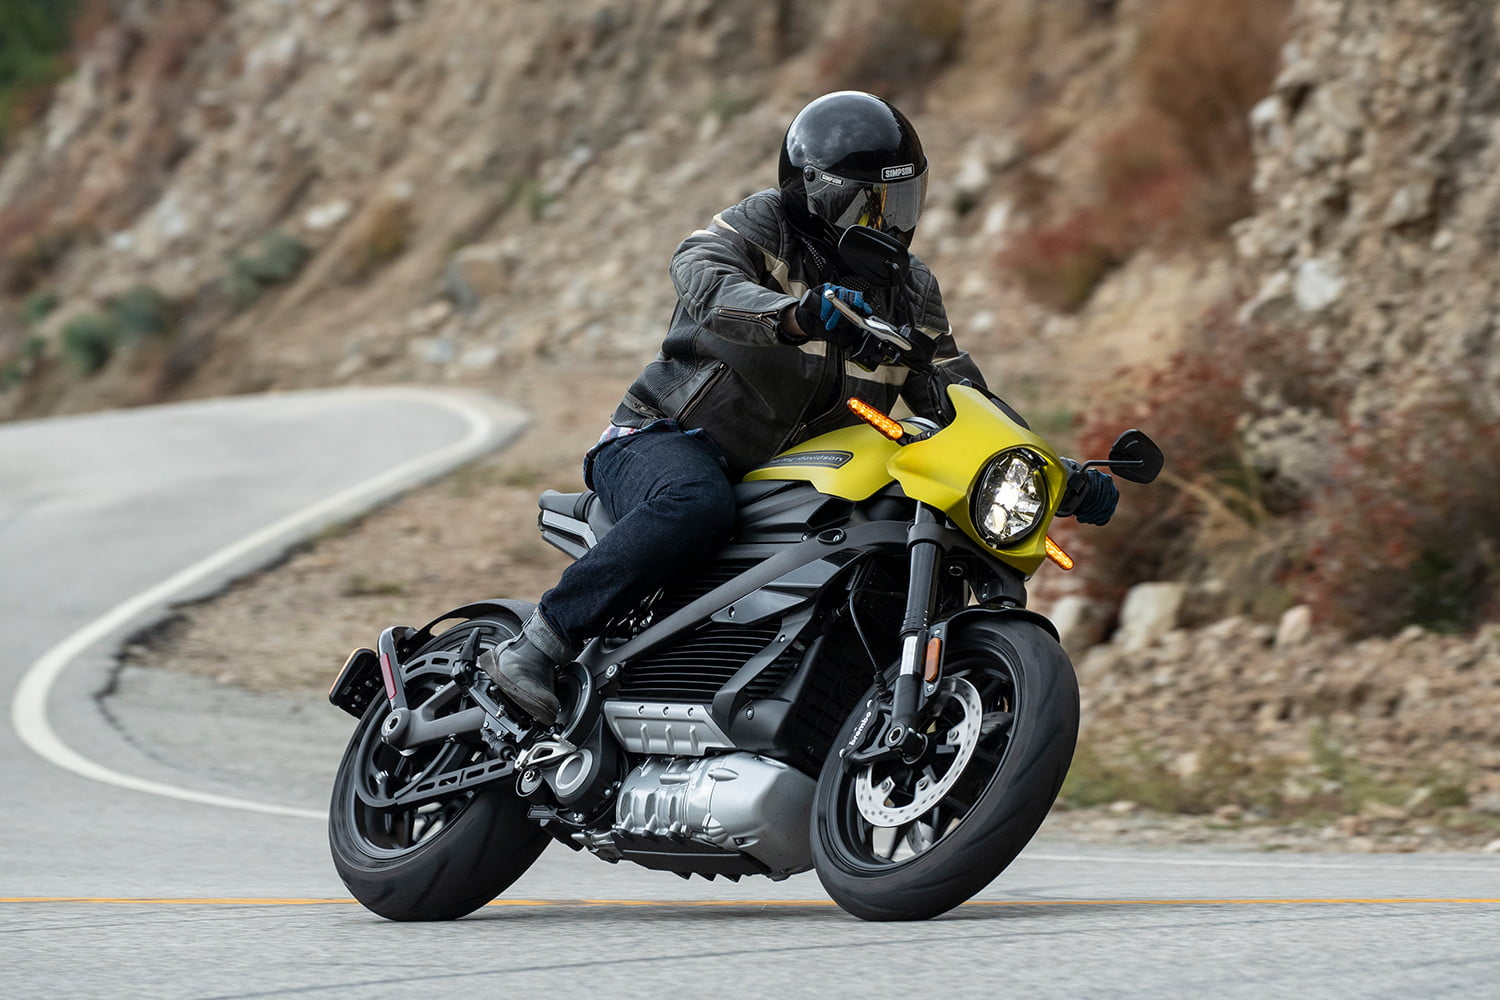 First Drive: I was wrong about the Harley-Davidson Livewire